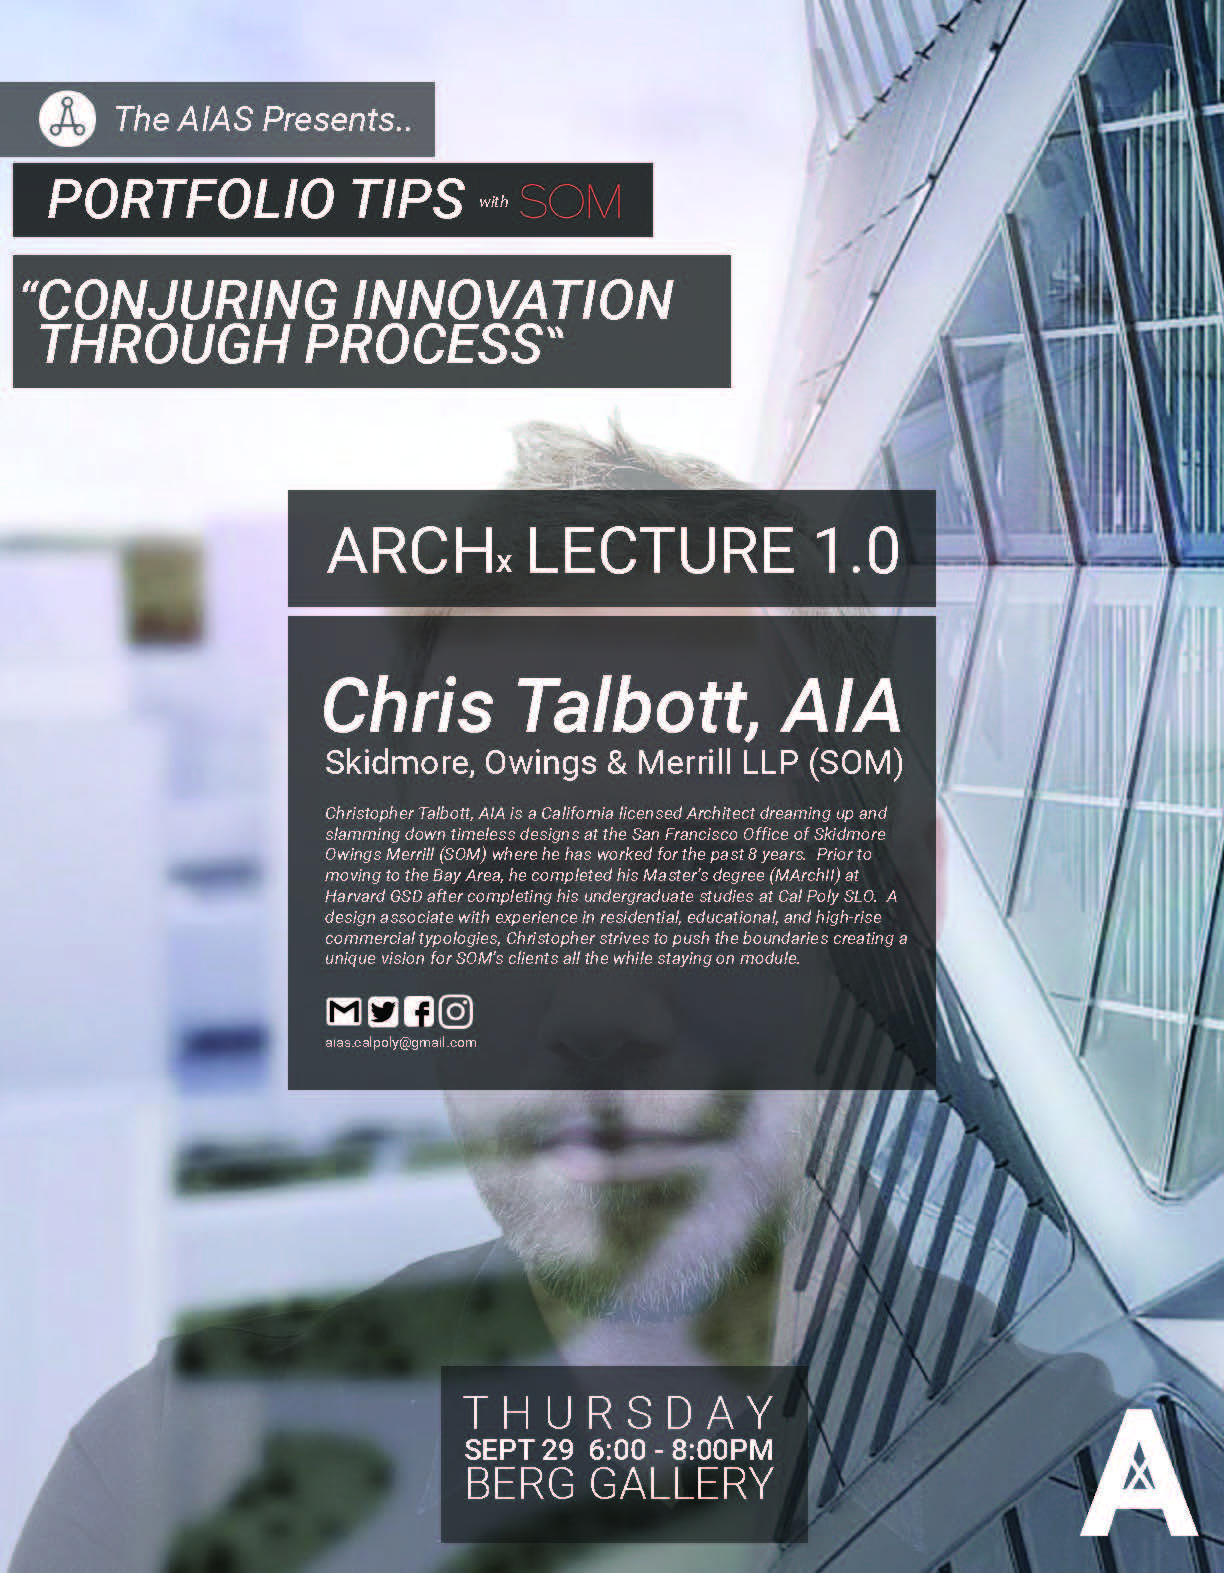 AIAS ARCHx Lecture 1.0